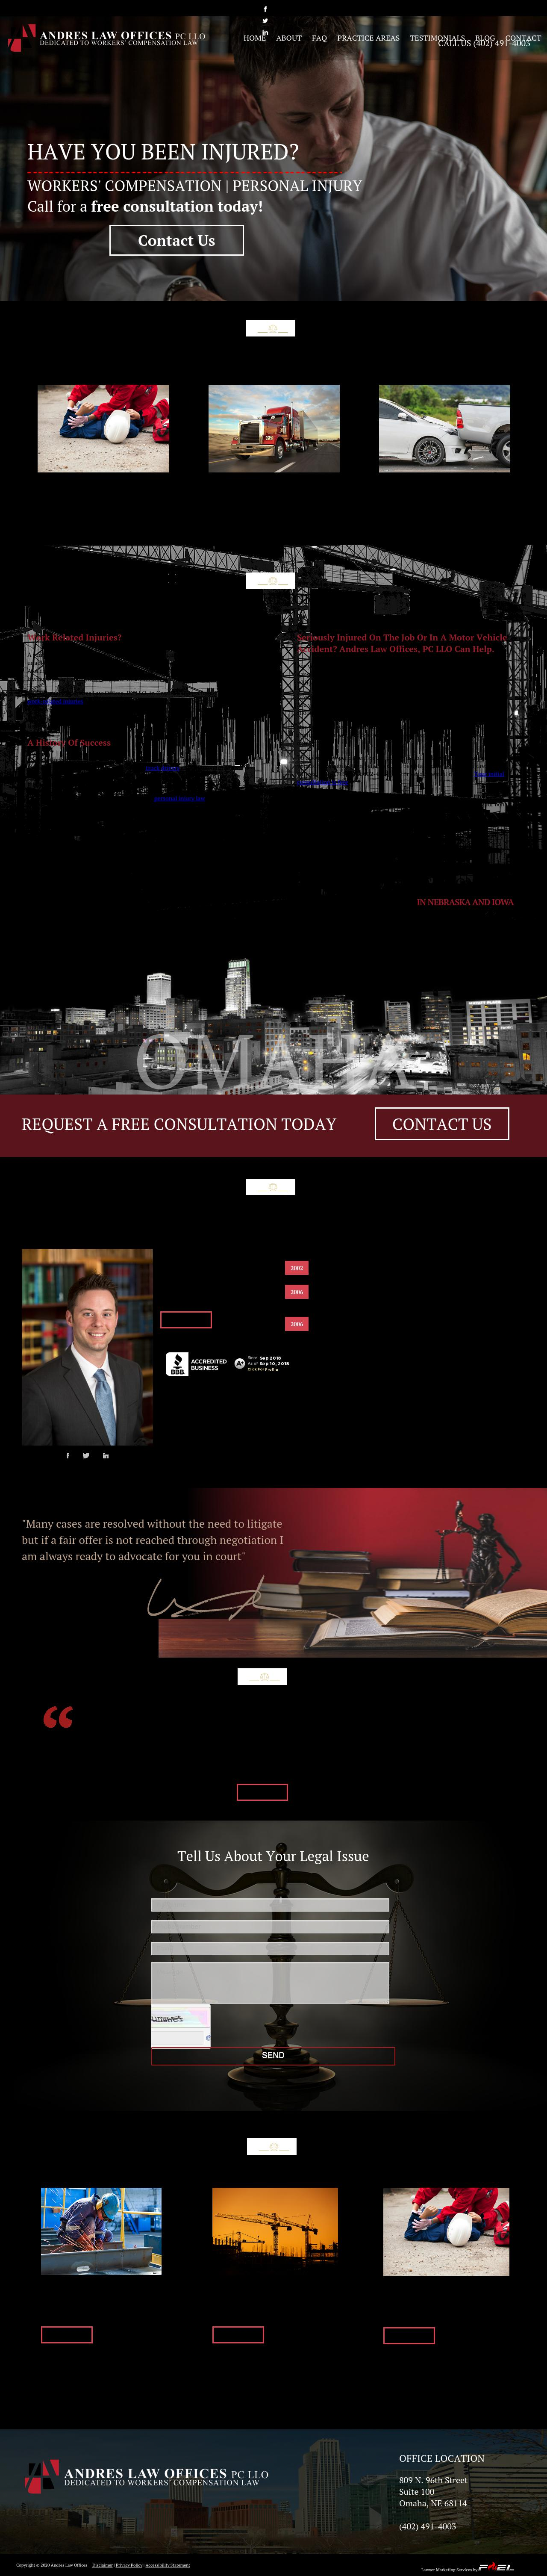 Andres Law Offices - Omaha NE Lawyers